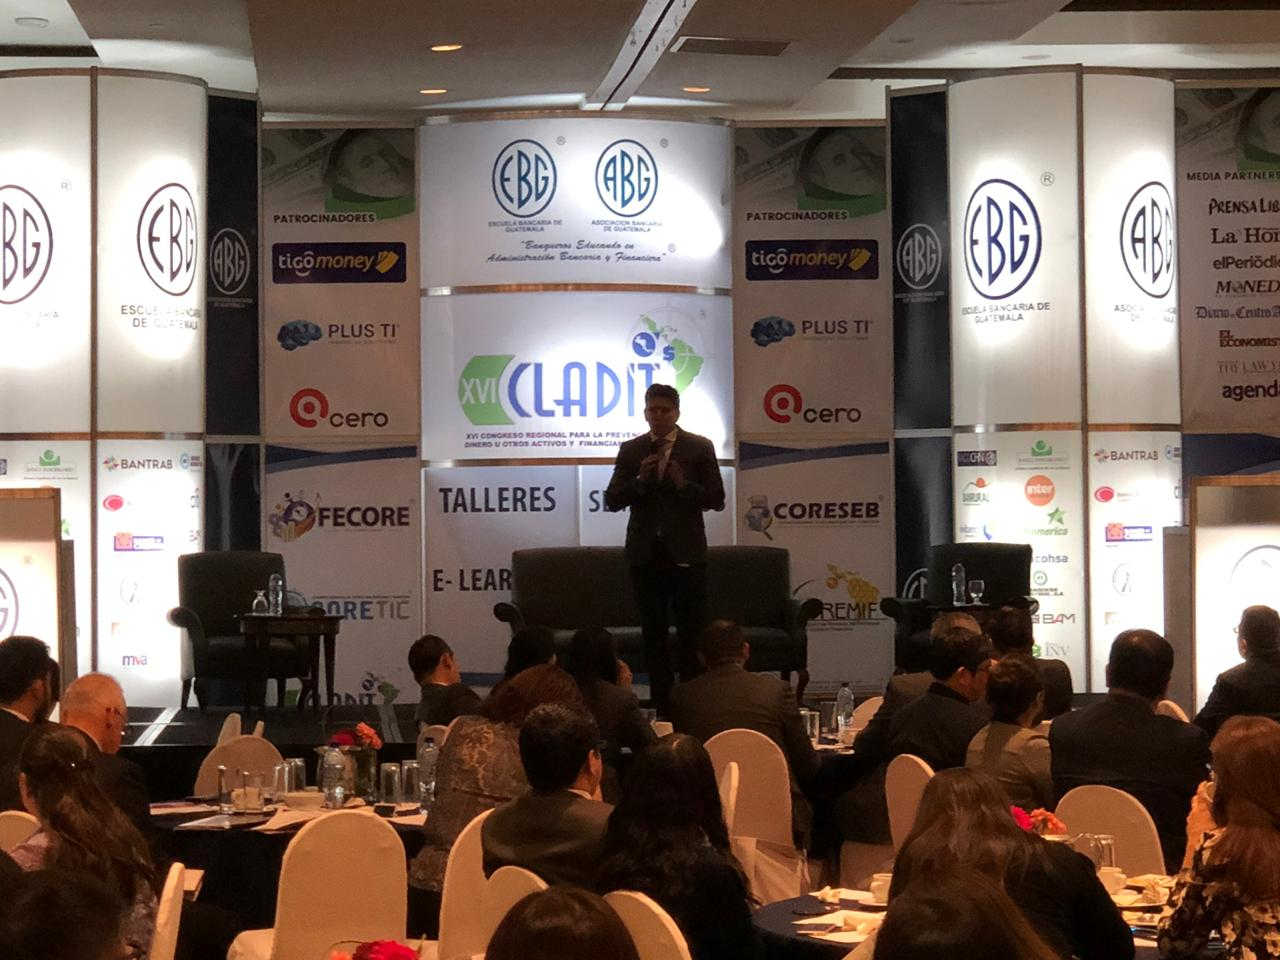 Plus TI en CLADIT 2019, Guatemala